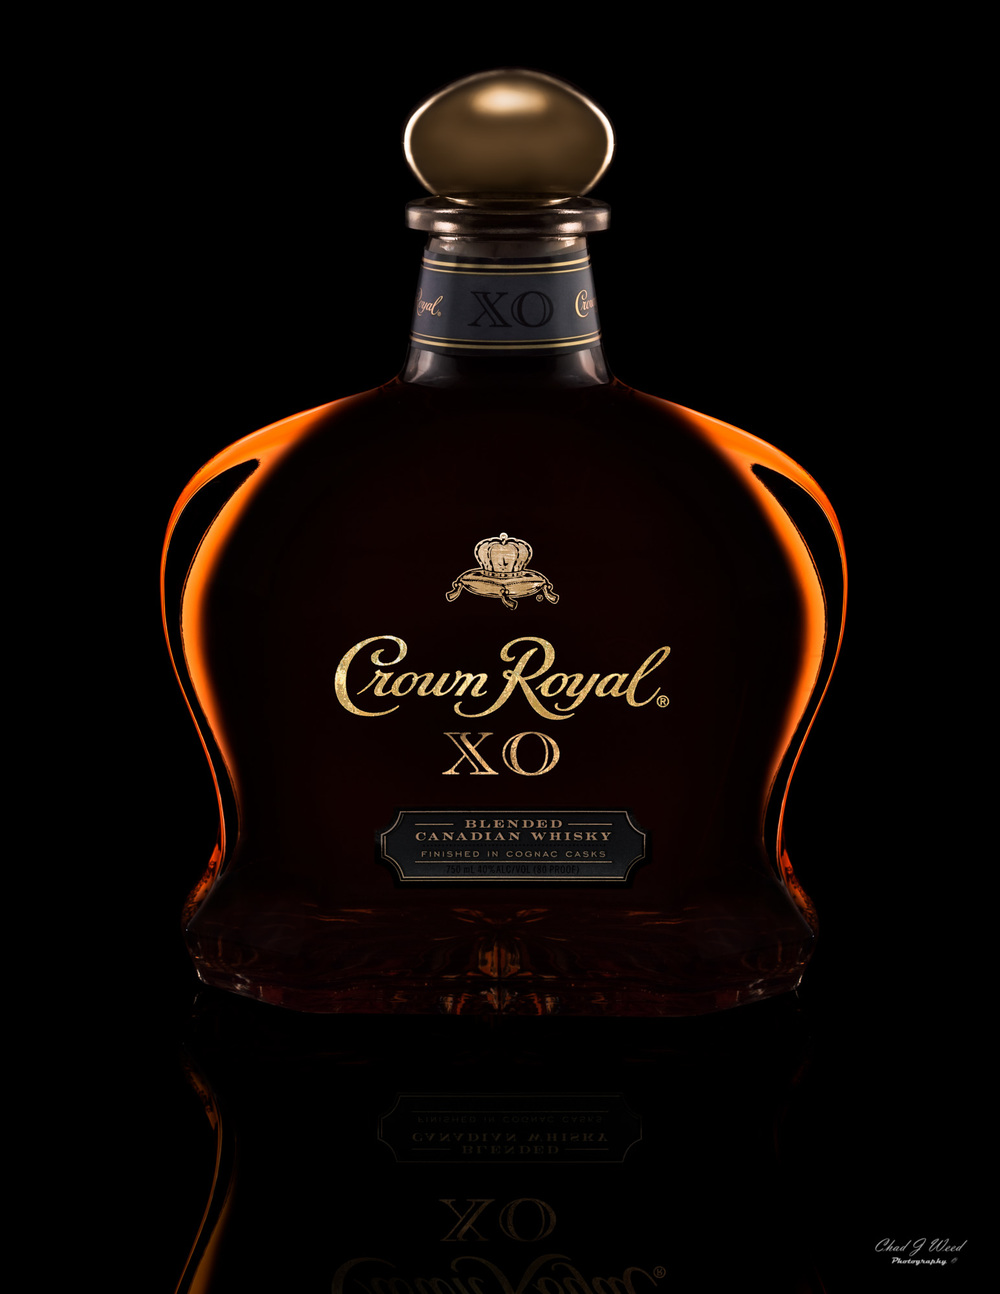 Crown Royal XO Bottle by Arizona Commercial Beverage Photographer Chad J Weed